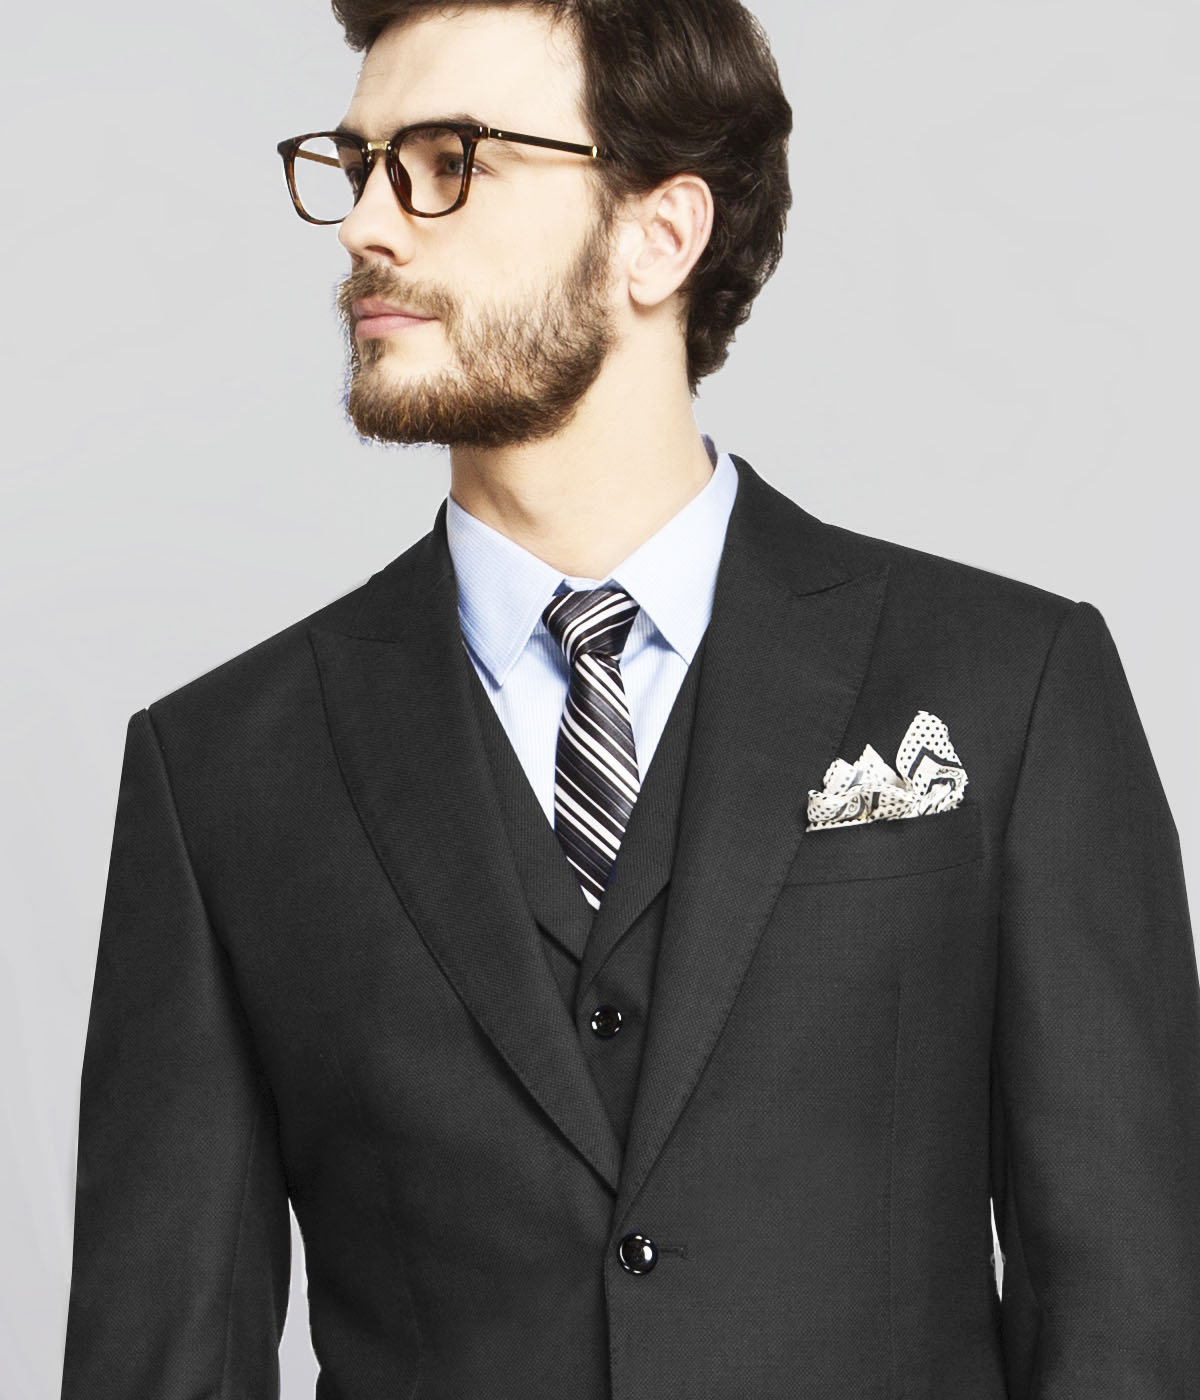 Tribeca Charcoal Birdseye Suit-mbview-3